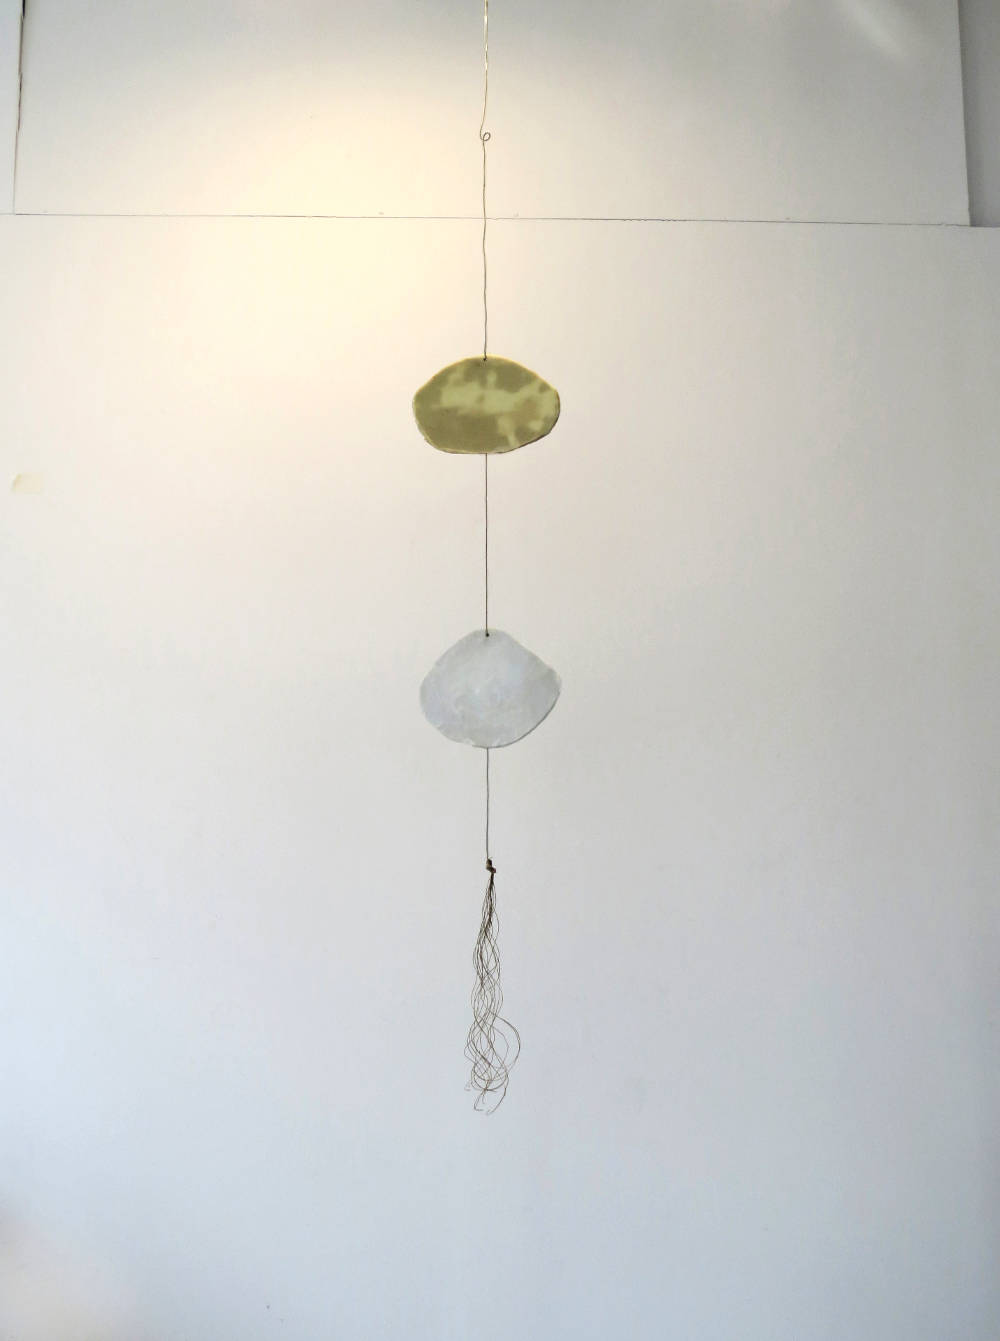 Lisbeth McCoy, Bumppo III, 2018, plaster on burlap, wax, paper, wire, string